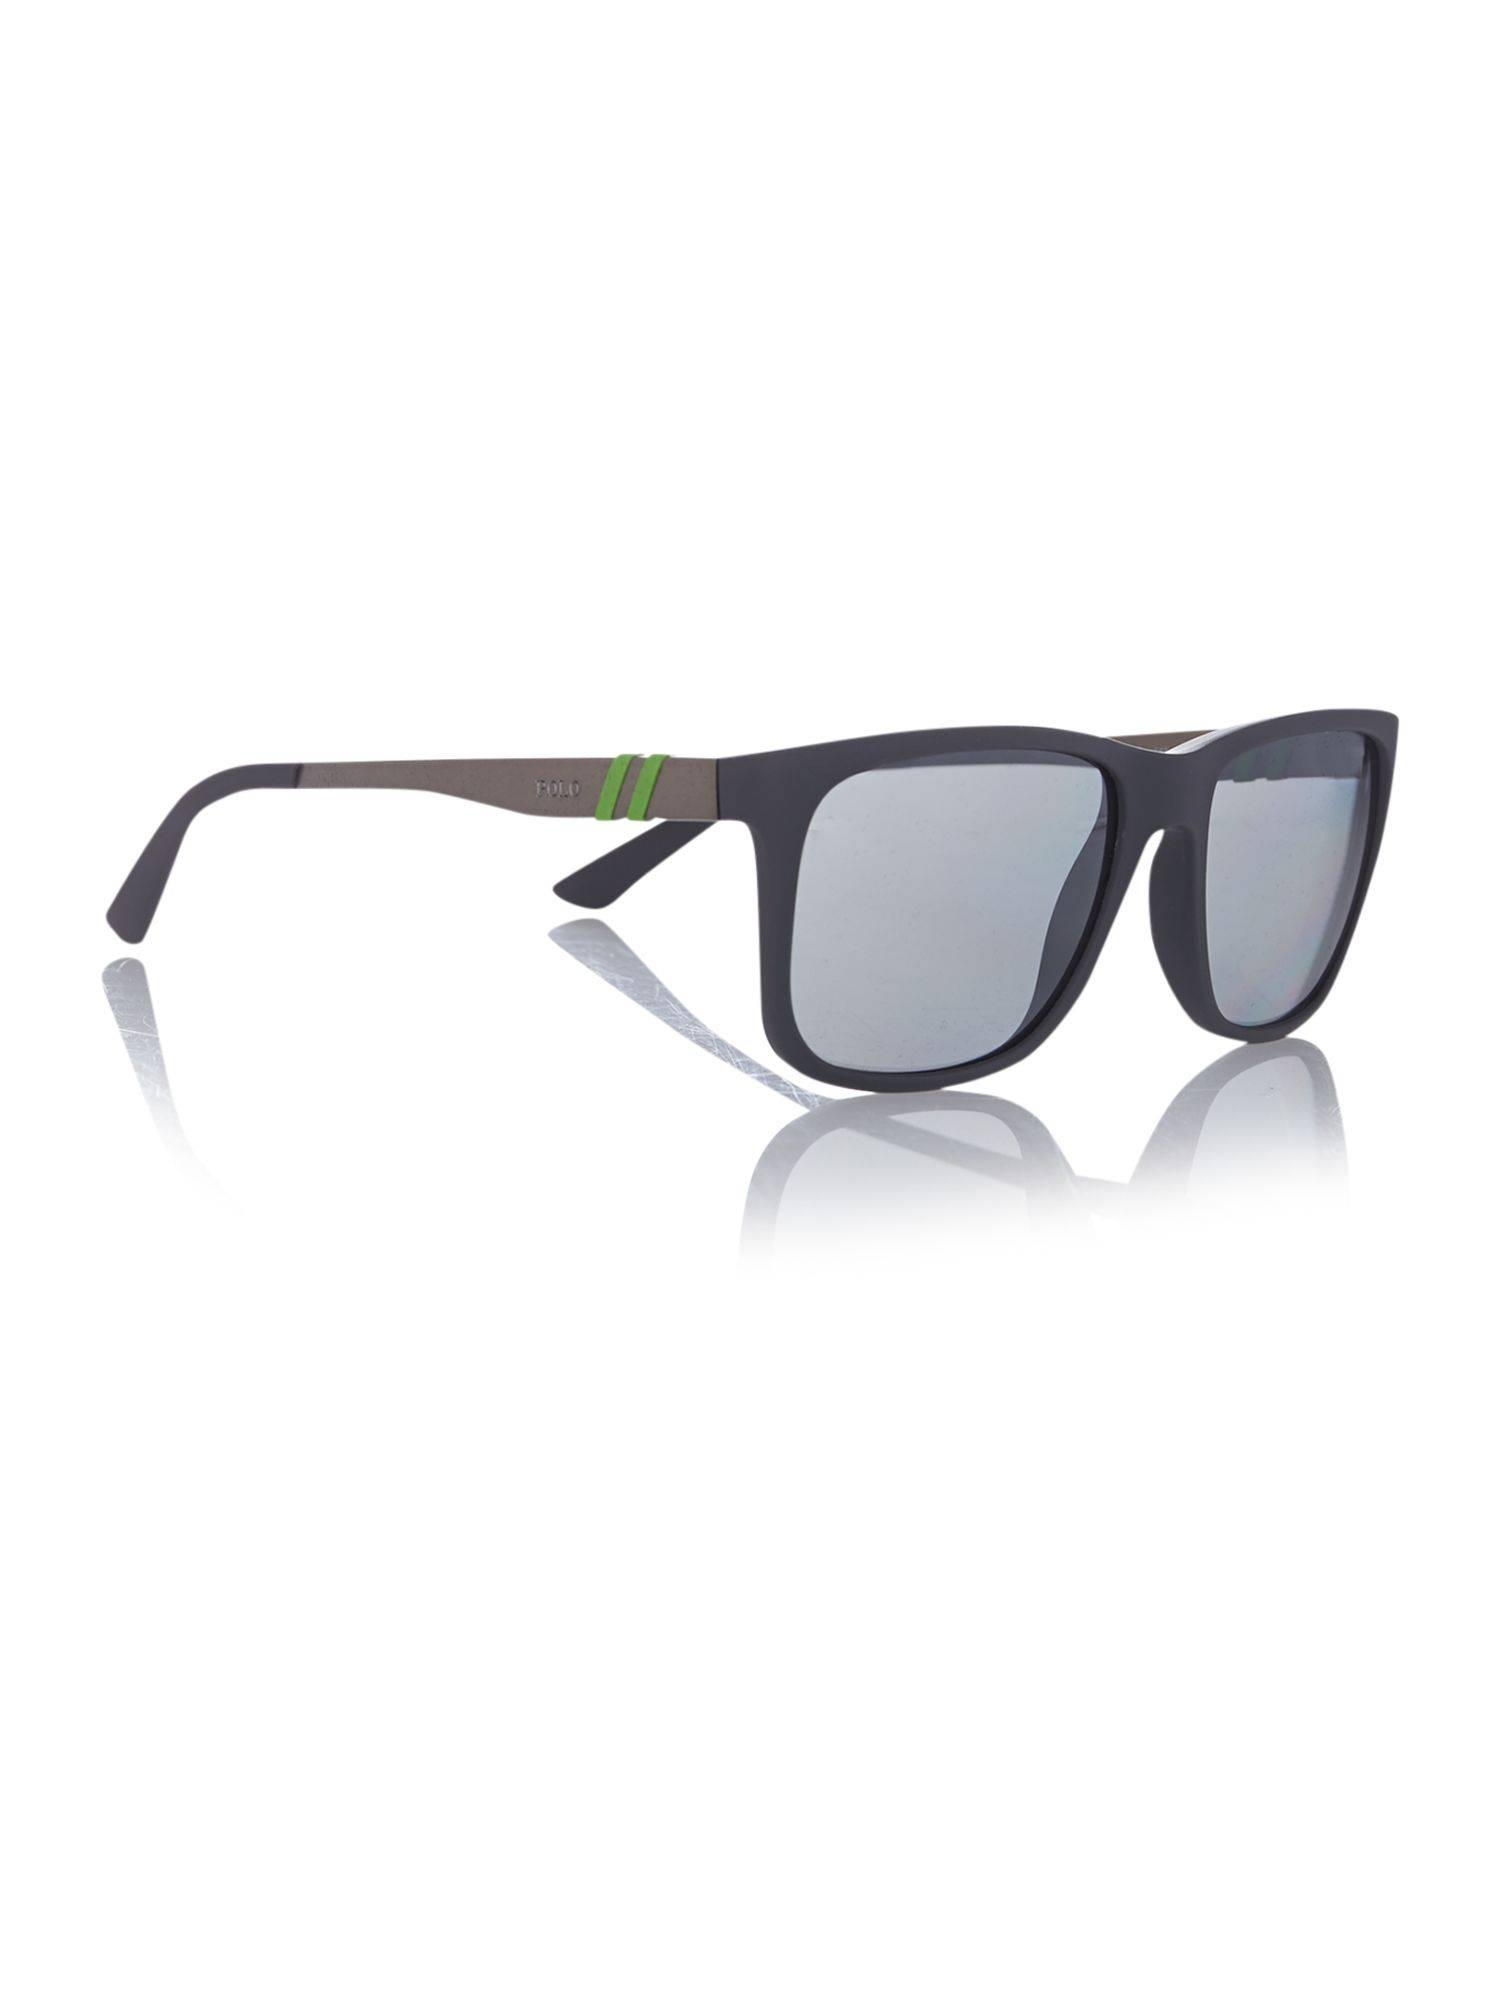 Prada Sunglasses Cat Eye Sunglasses